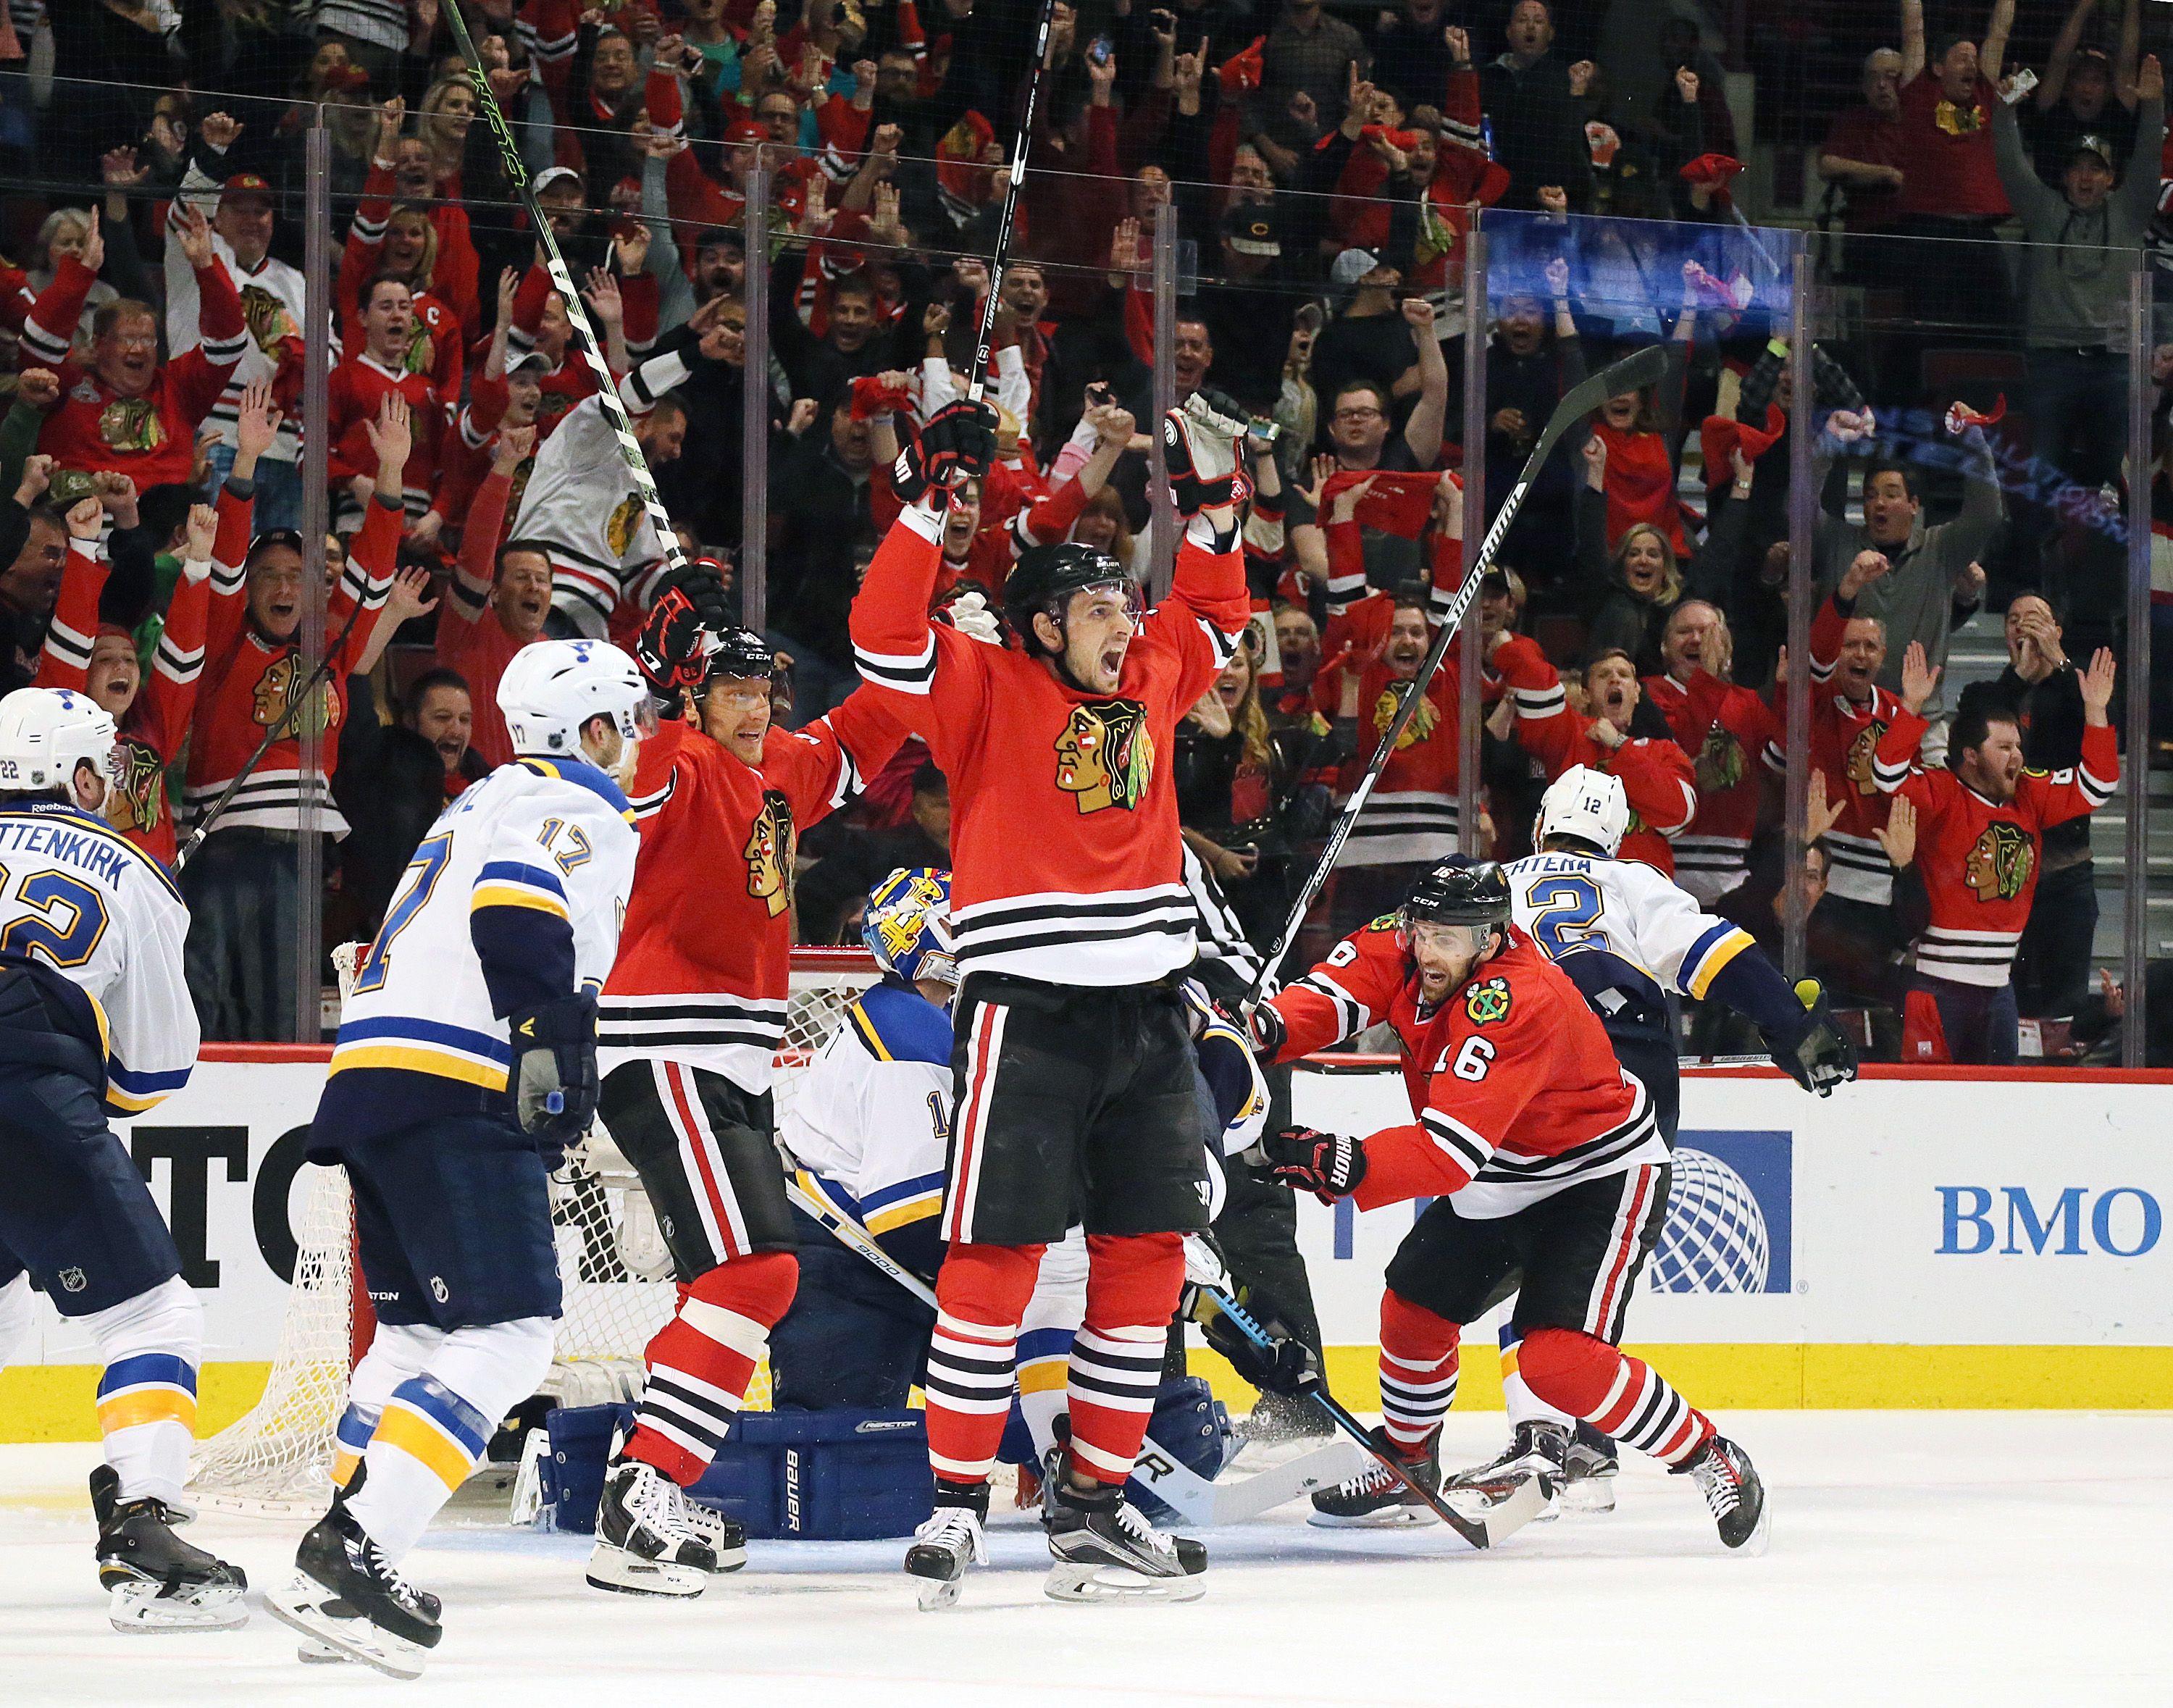 Chicago Blackhawks center Artem Anisimov, center, reacts after scoring in the second period of Game 6 of an NHL hockey first-round Stanley Cup playoff series against the St. Louis Blues, Saturday, April 23, 2016, in Chicago. (Chris Lee/St. Louis Post-Disp